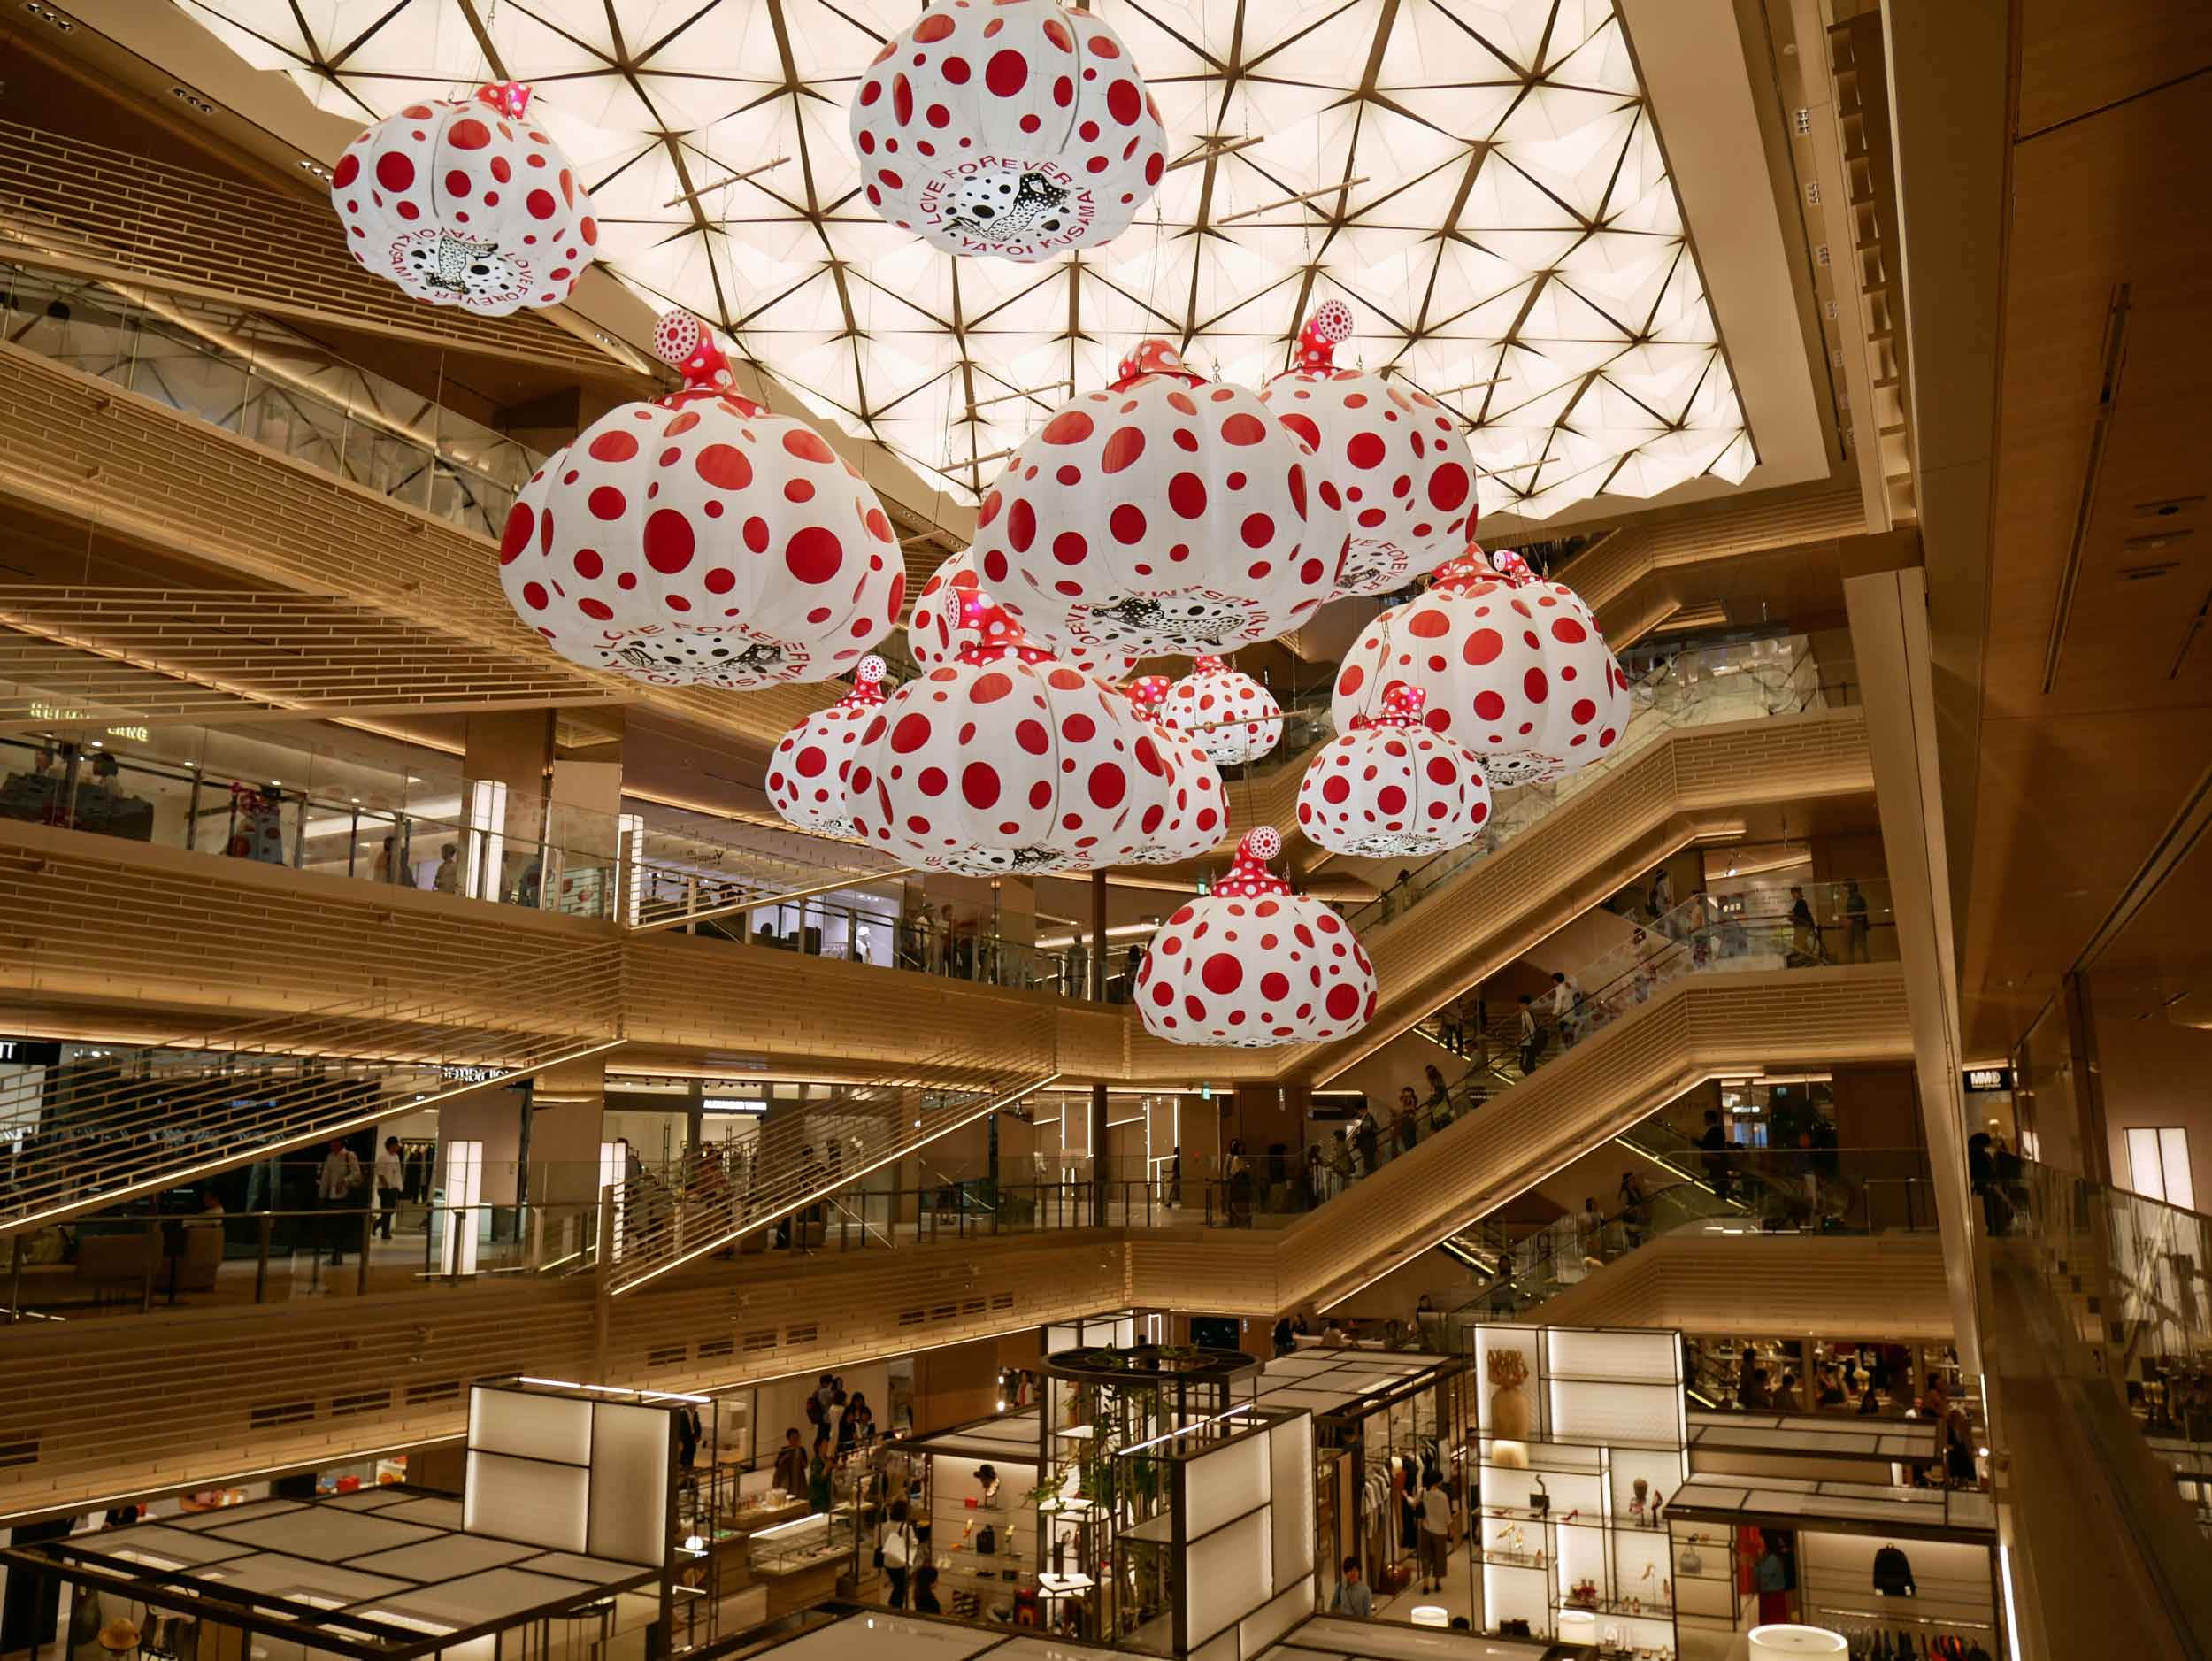 The hot new shopping in Tokyo is at Ginza Six, which featured Japanese artist Yayoi Kusama's surreal giant pumpkins.